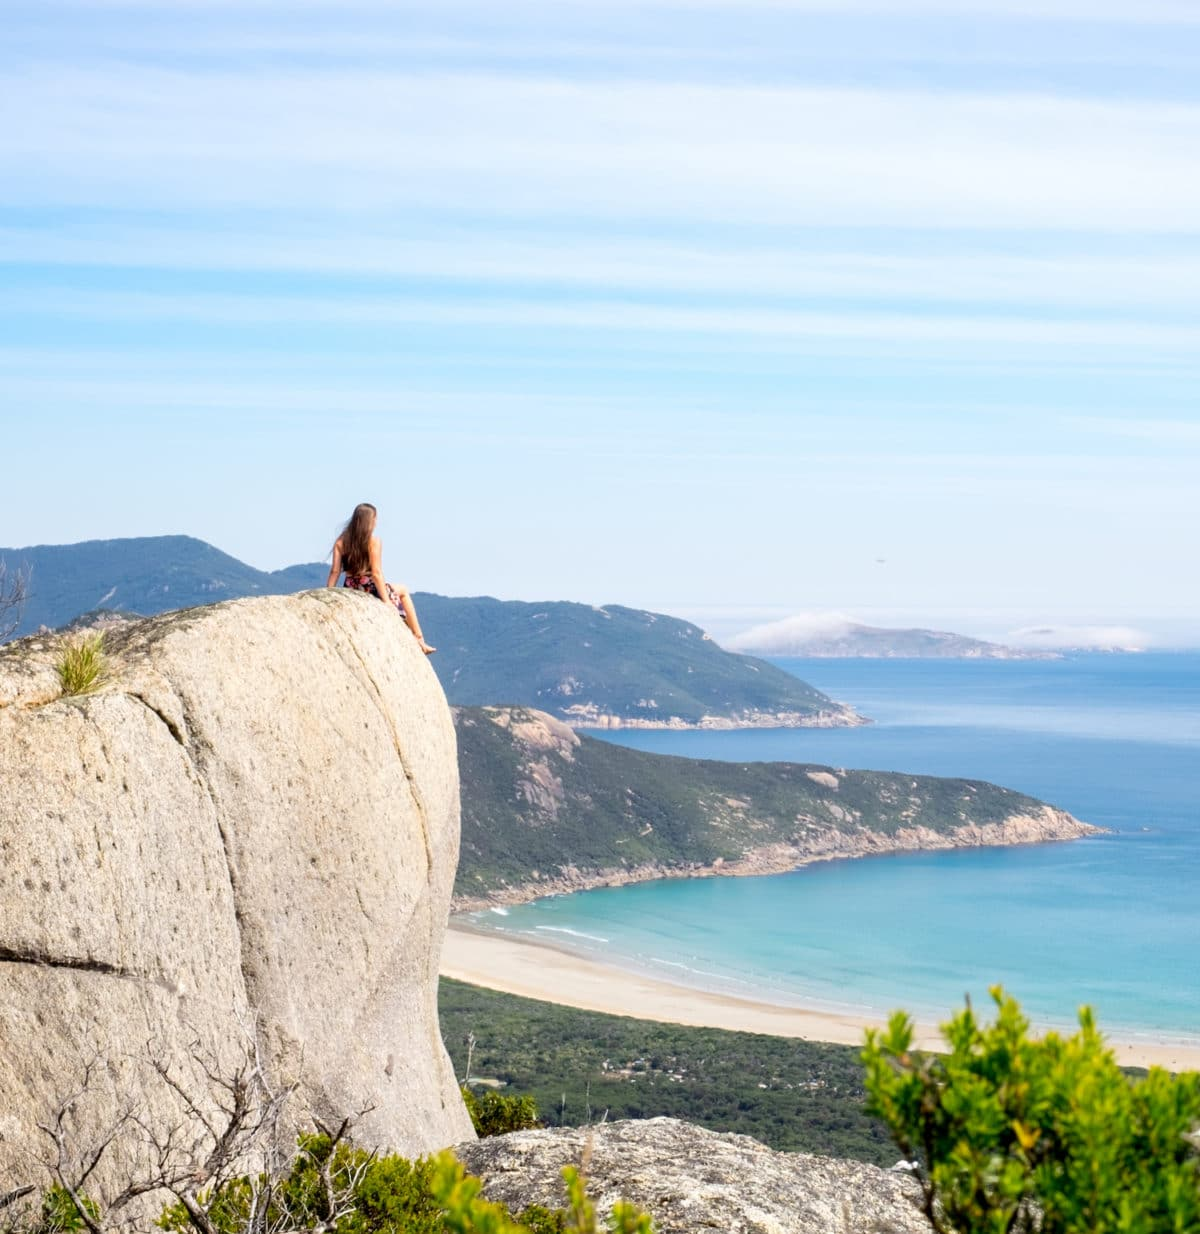 Sophie Clapton @travelsofsophie at Wilsons Promontory National Park in Victoria, Australia